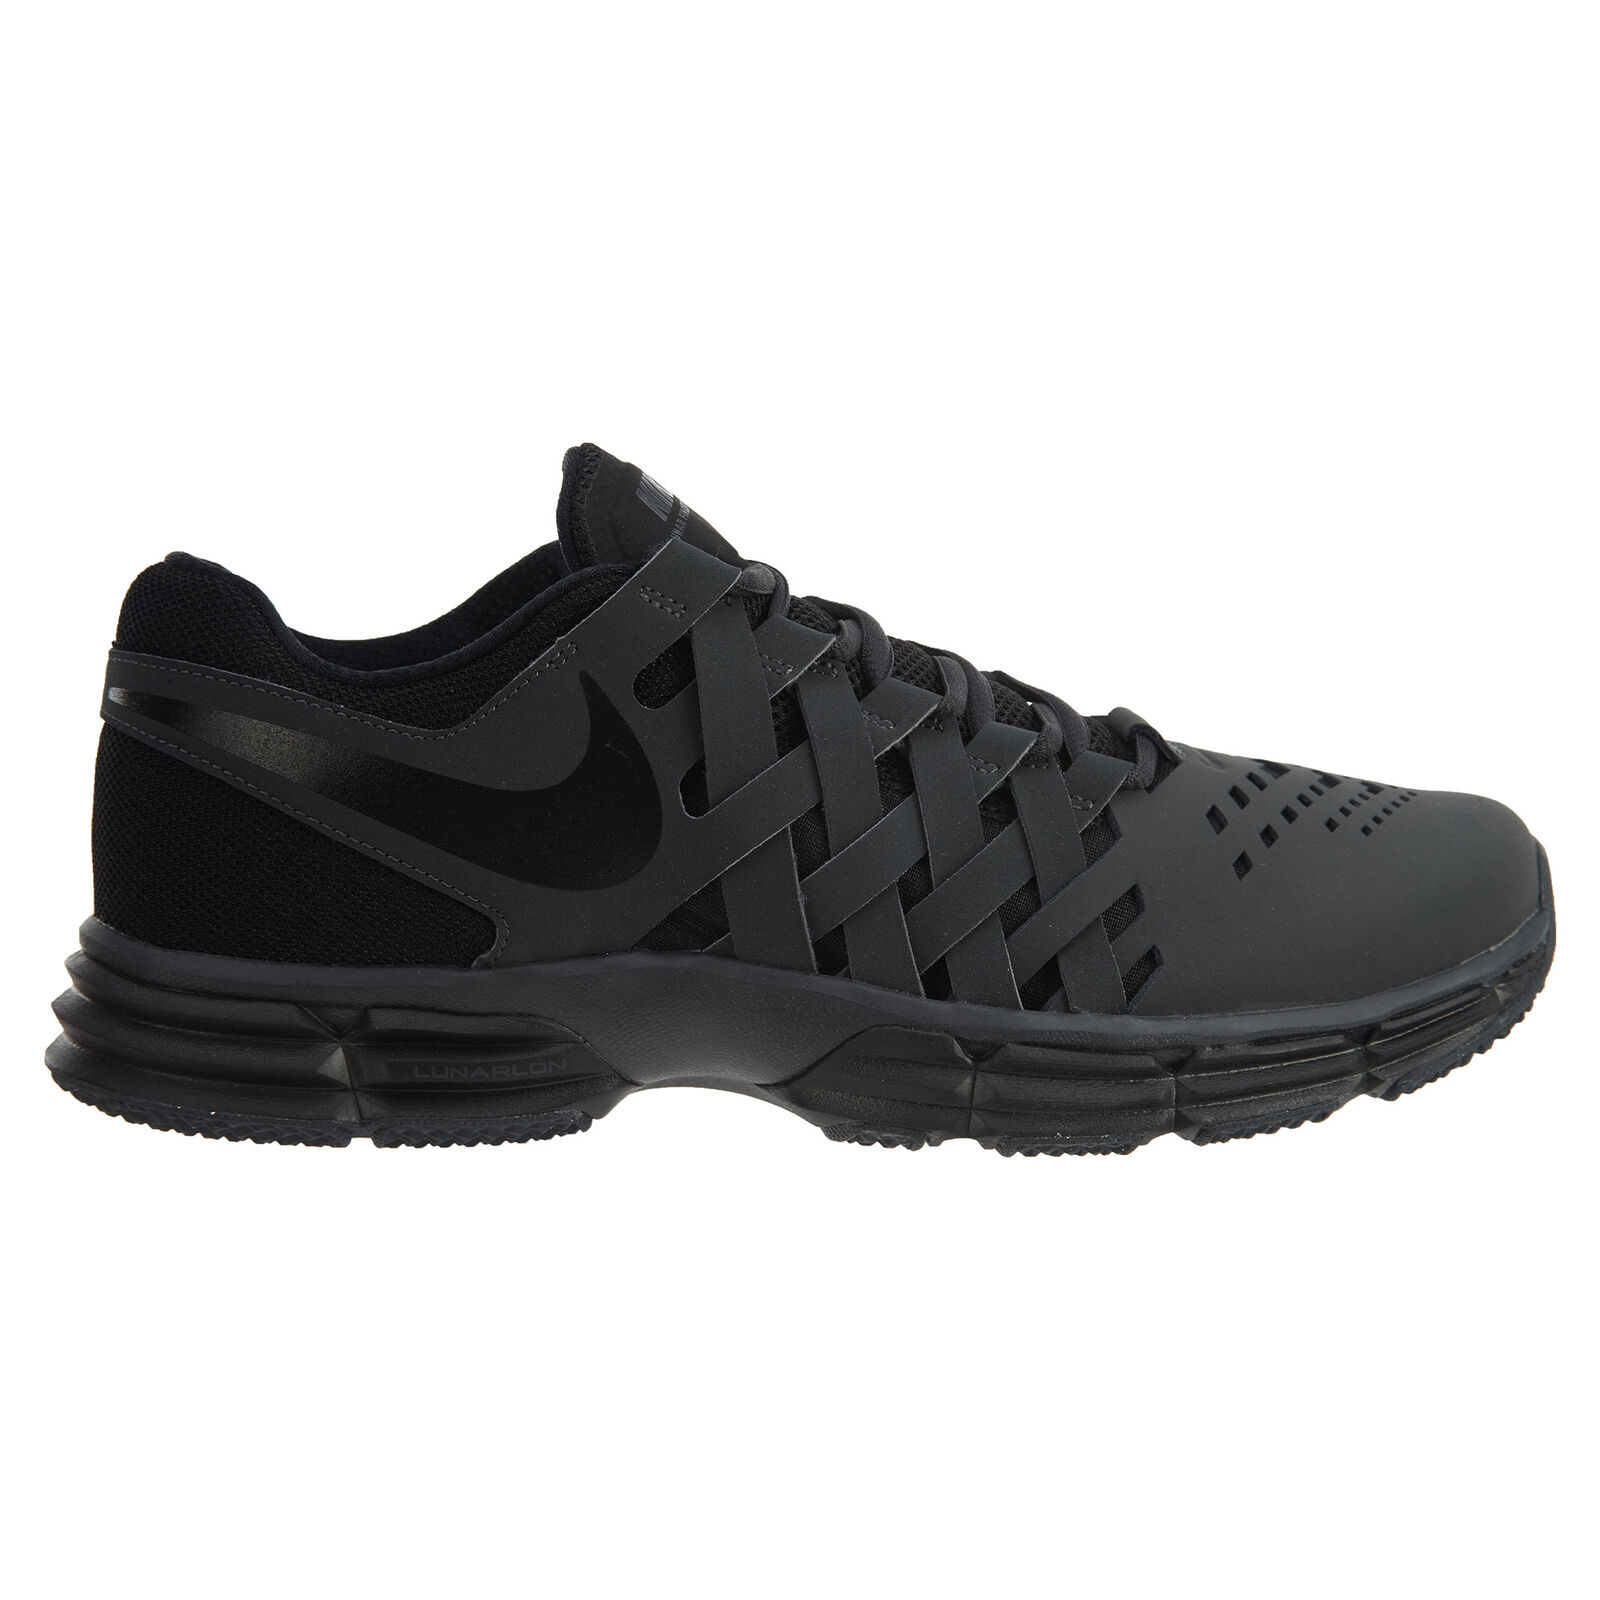 Nike Lunar Fingertrap TR Mens 898066-010 Anthracite Black Training shoes Size 12